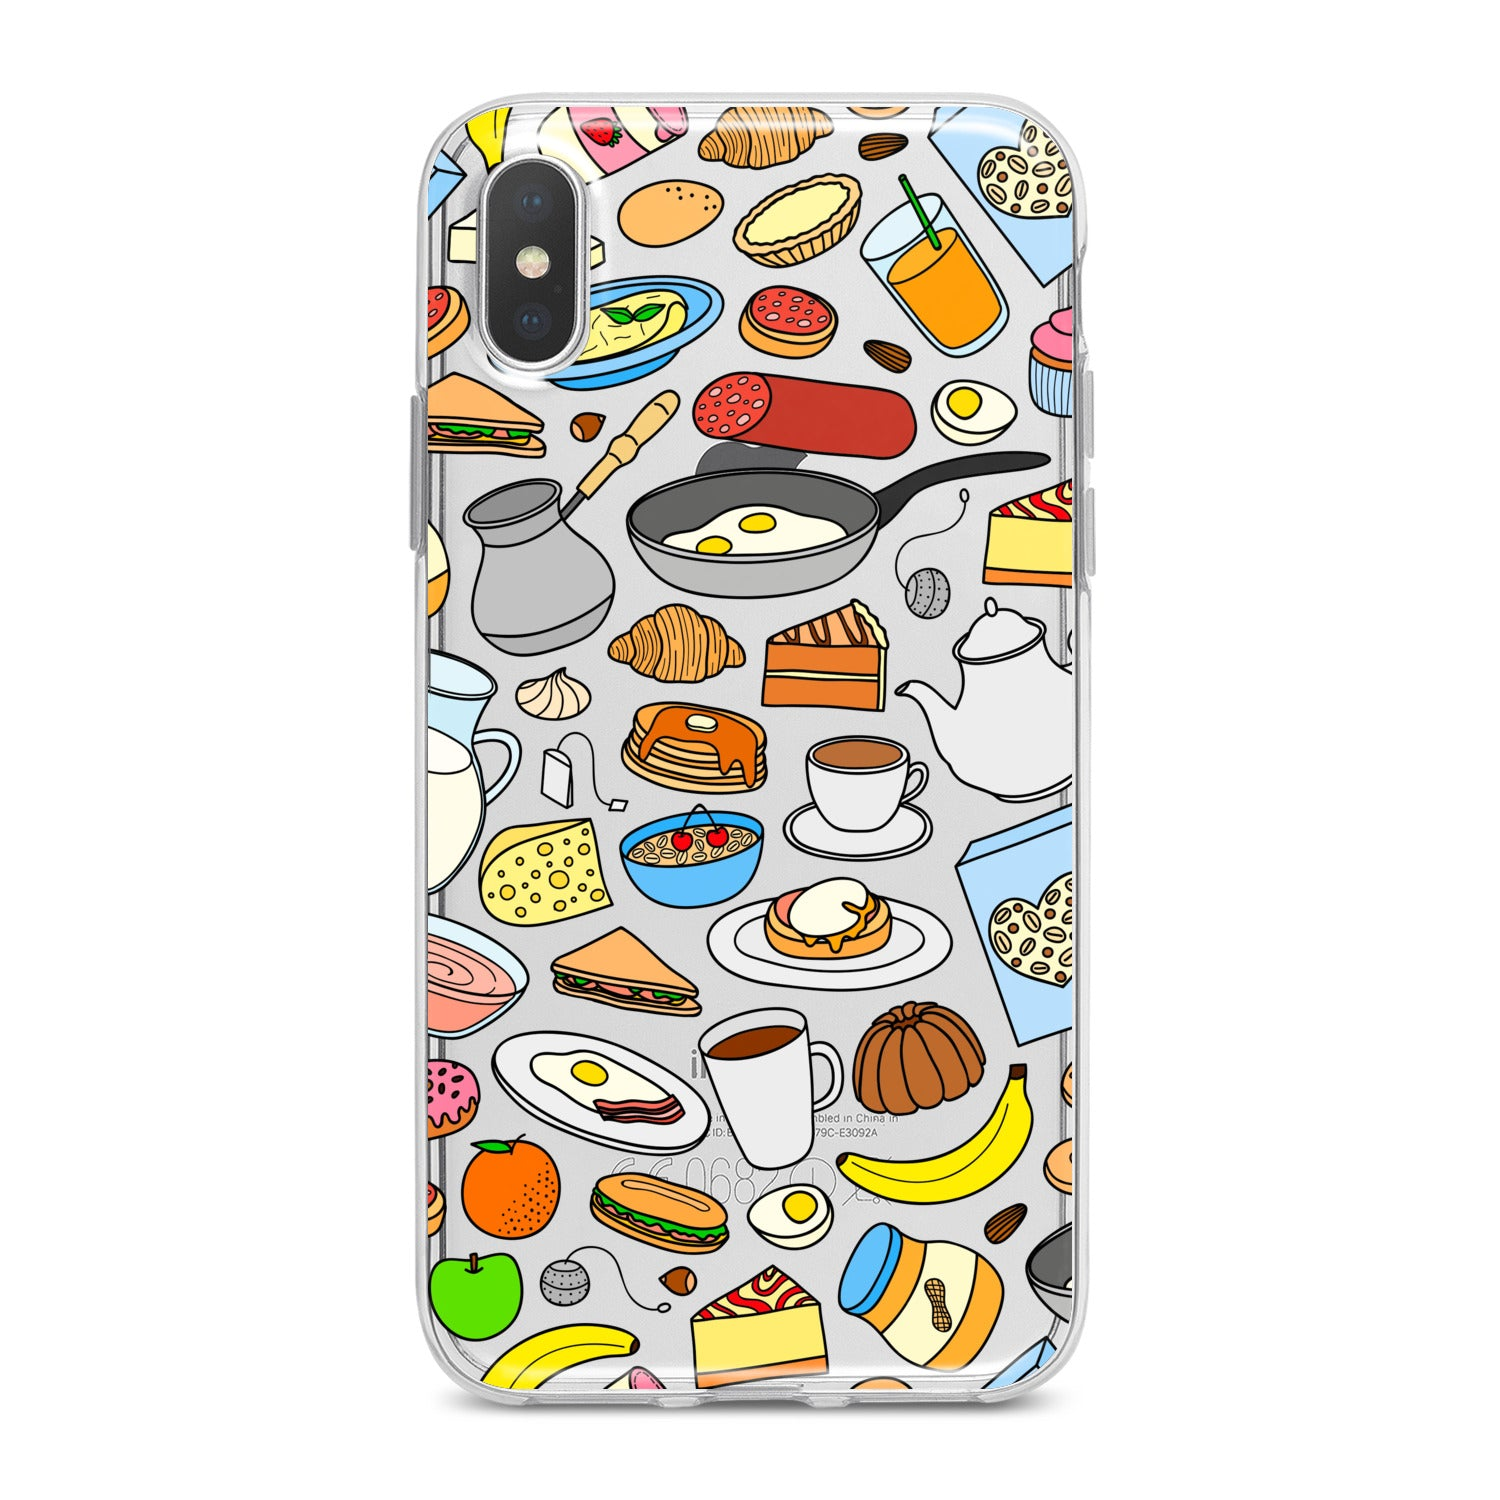 Lex Altern Chef Food Pattern Phone Case for your iPhone & Android phone.